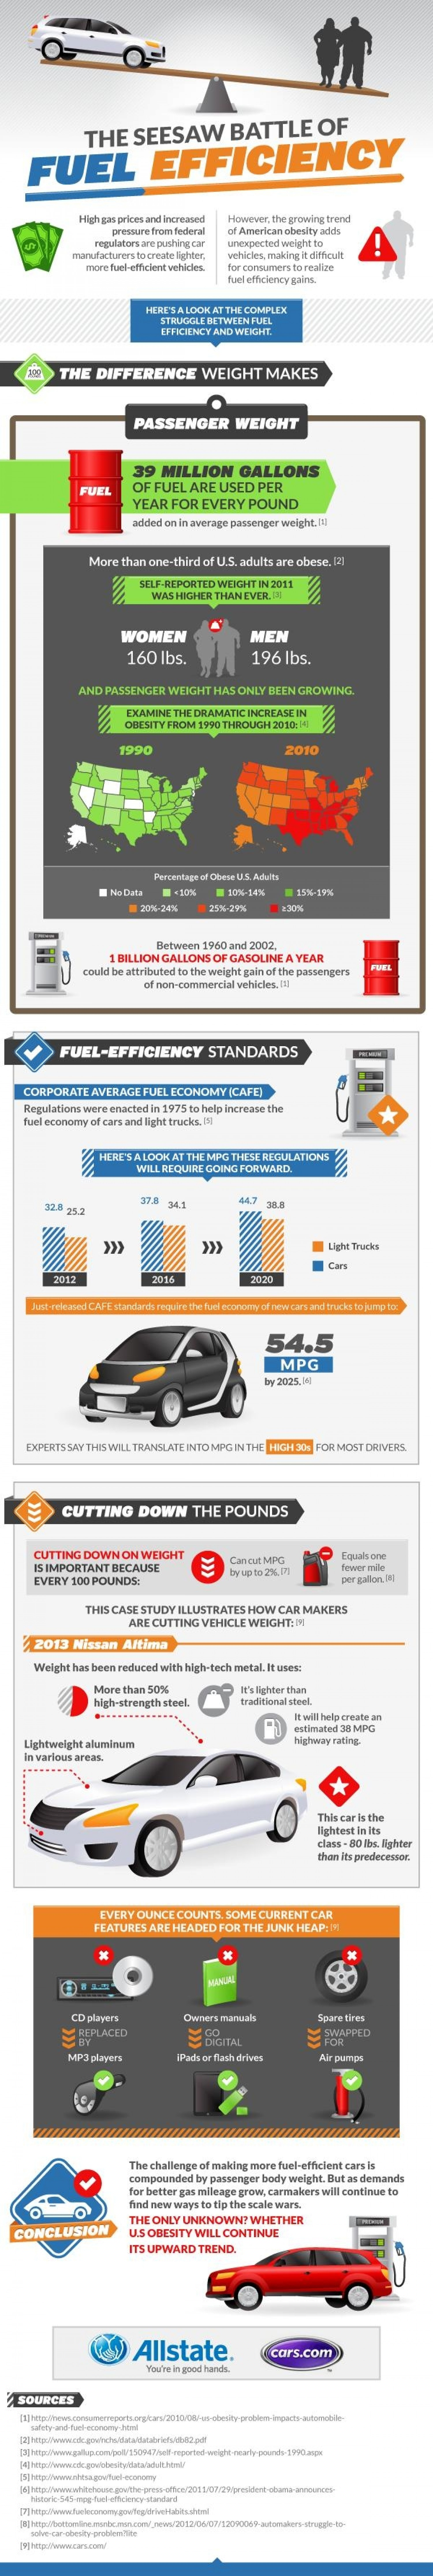 7. How Obese Drivers Hurt the Effort to Curb Fuel Consumption